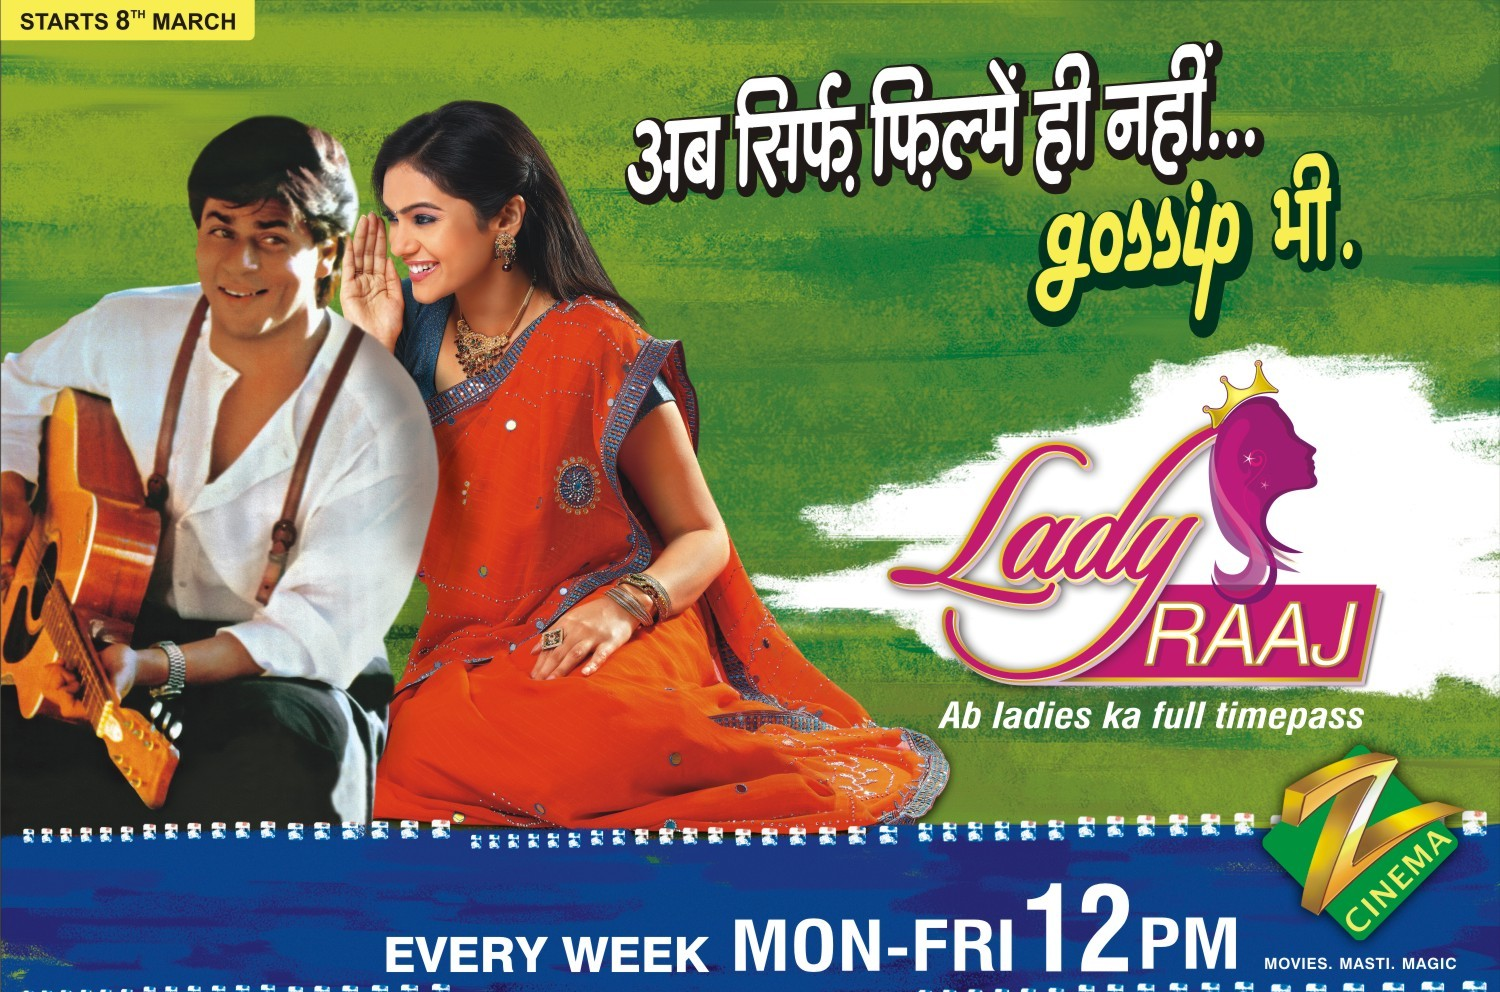 Zee Cinema wishes all women a Happy Women's Day with 'Lady Raaj'